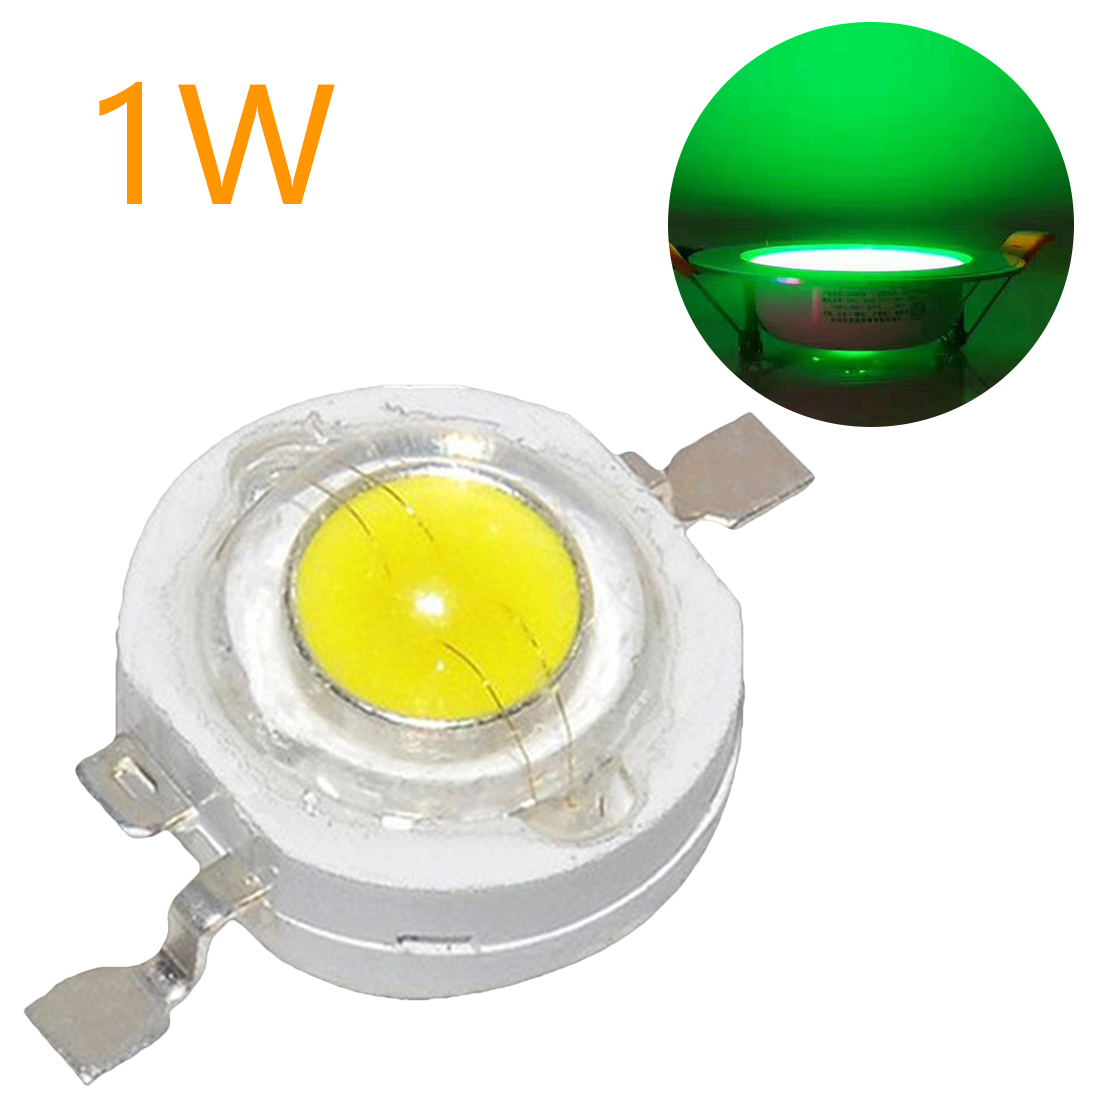 High Power 1W / 3W Led Chips Bulb Diode Lamp Warm White / White / Red / Blue / Green SMD For LED Spotlight 1pcs